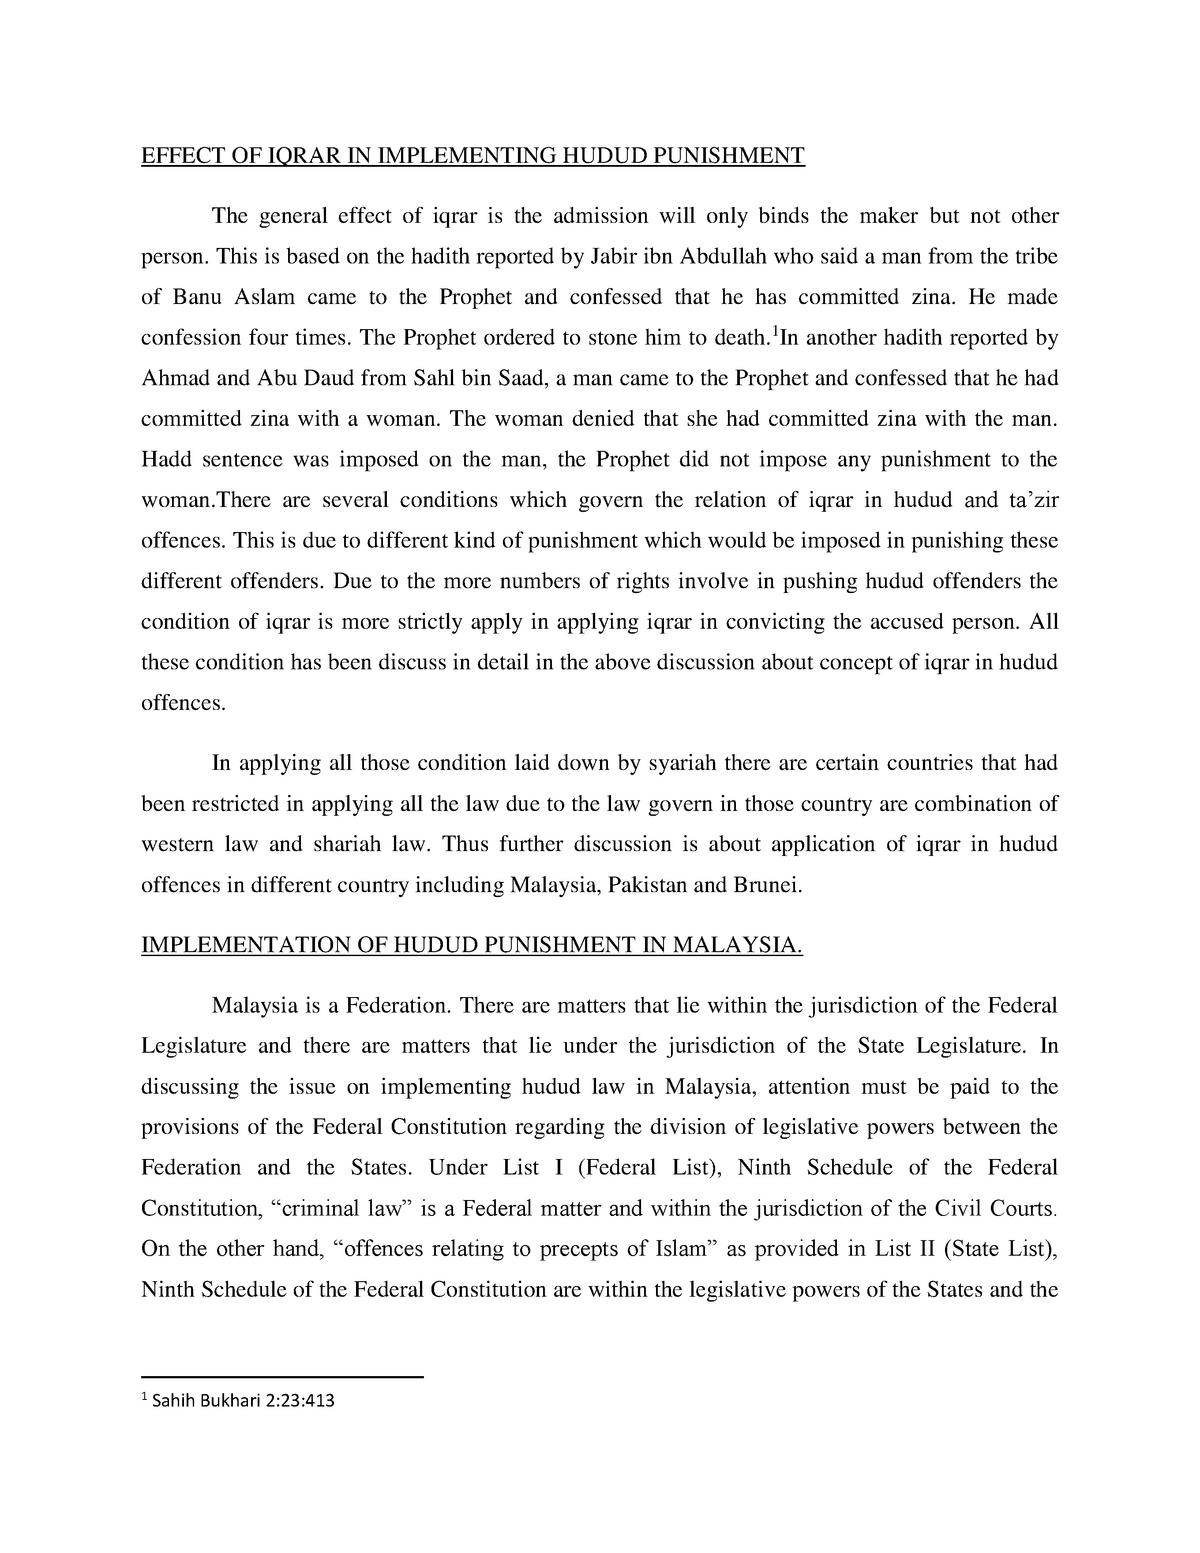 Implementation OF Hudud IN Malaysia - Islamic Evidence Law